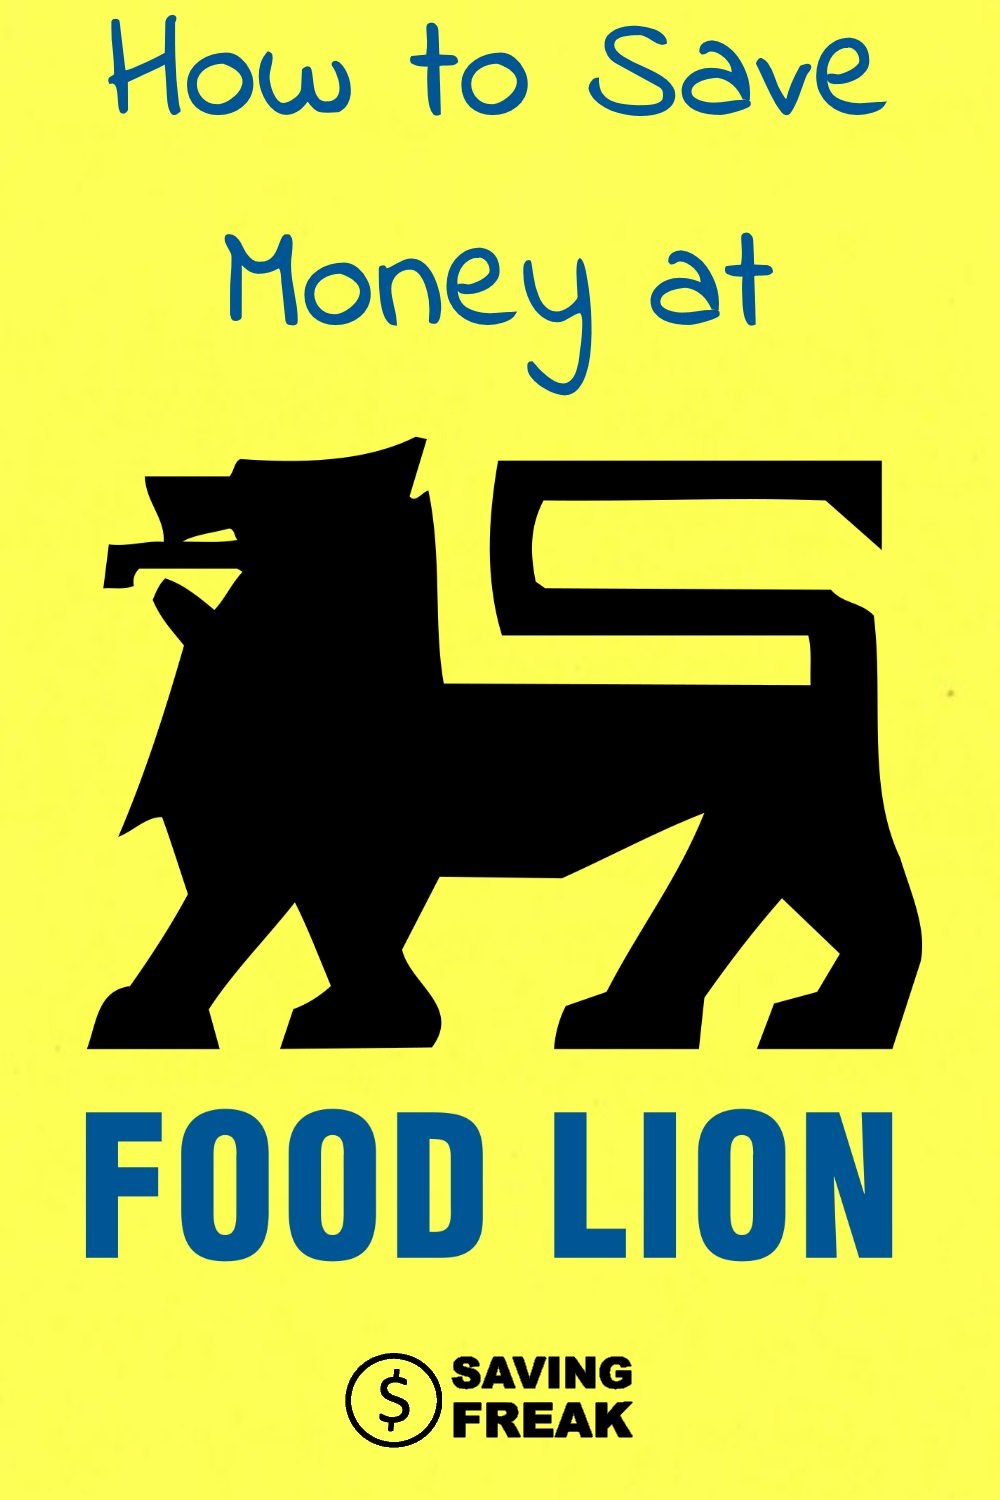 How to save money at Food Lion